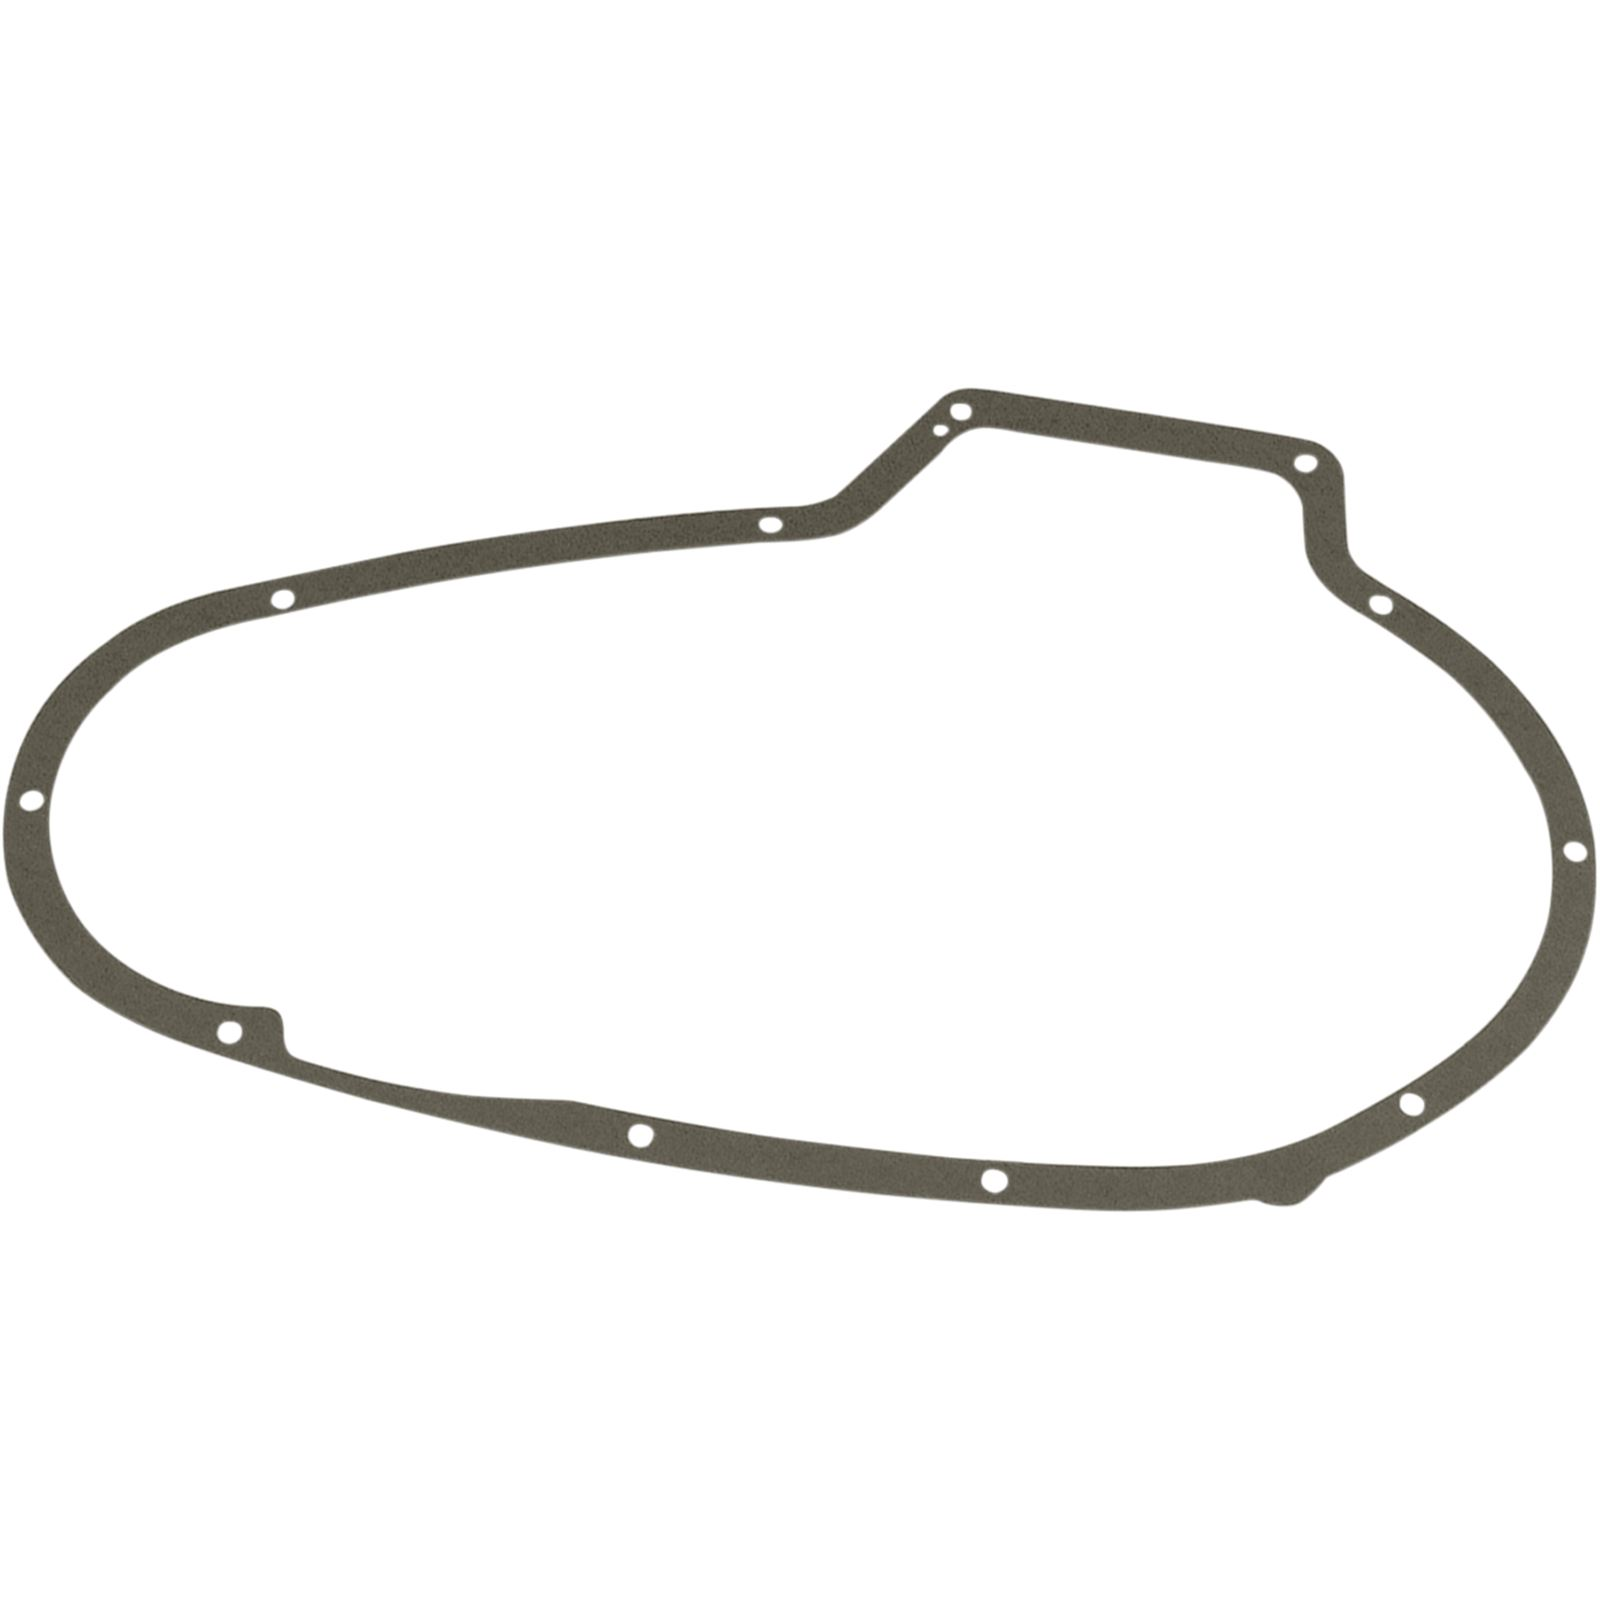 James Gaskets Primary Cover Gasket